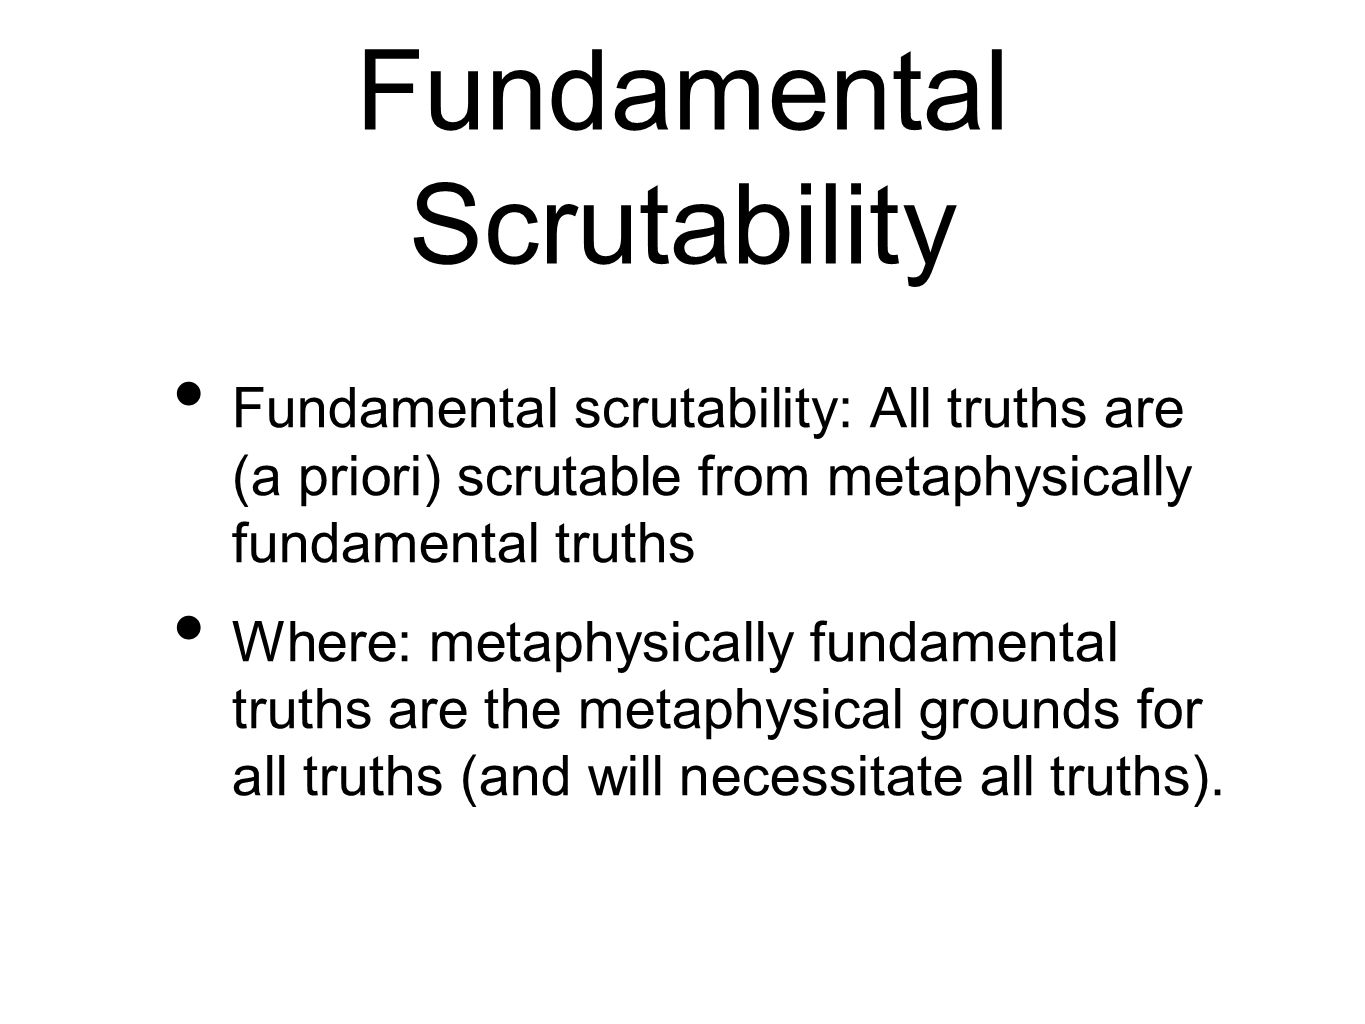 Fundamental Scrutability